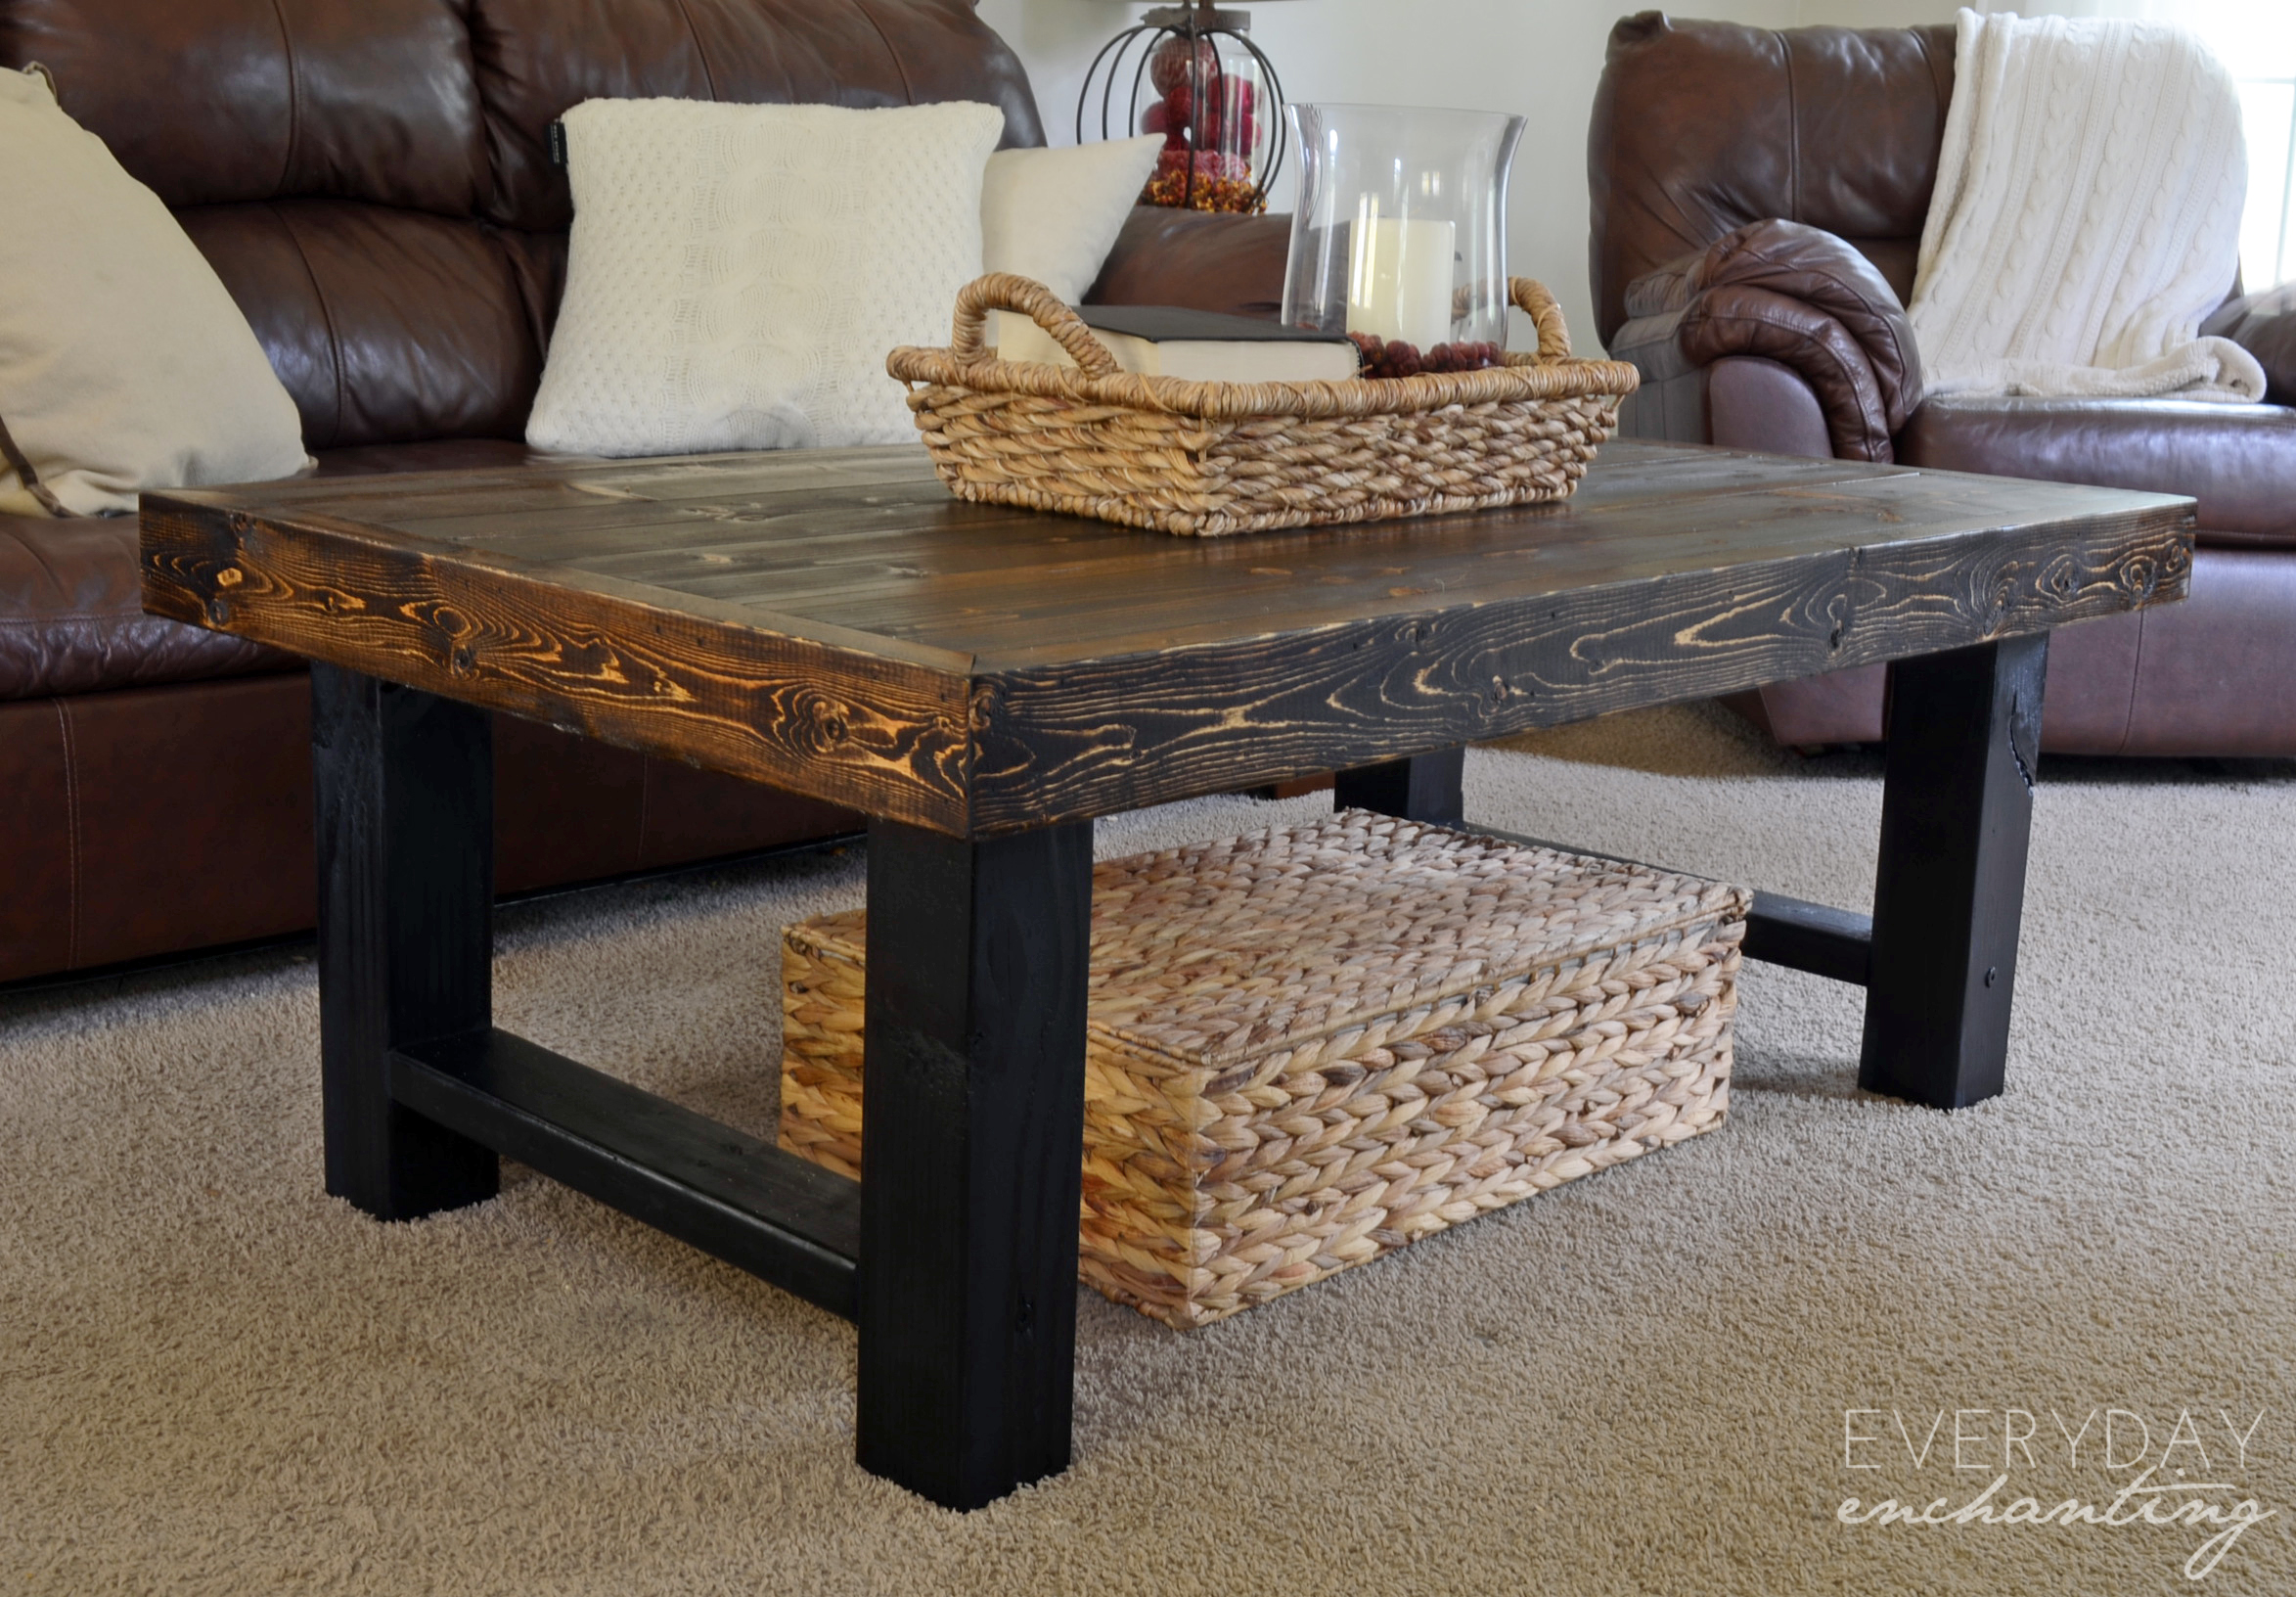 How to make a sofa table from 1 x 6 lumber - Diy Simple Coffee Table Learn How To Build A Diy Simple Coffee Table By Everyday